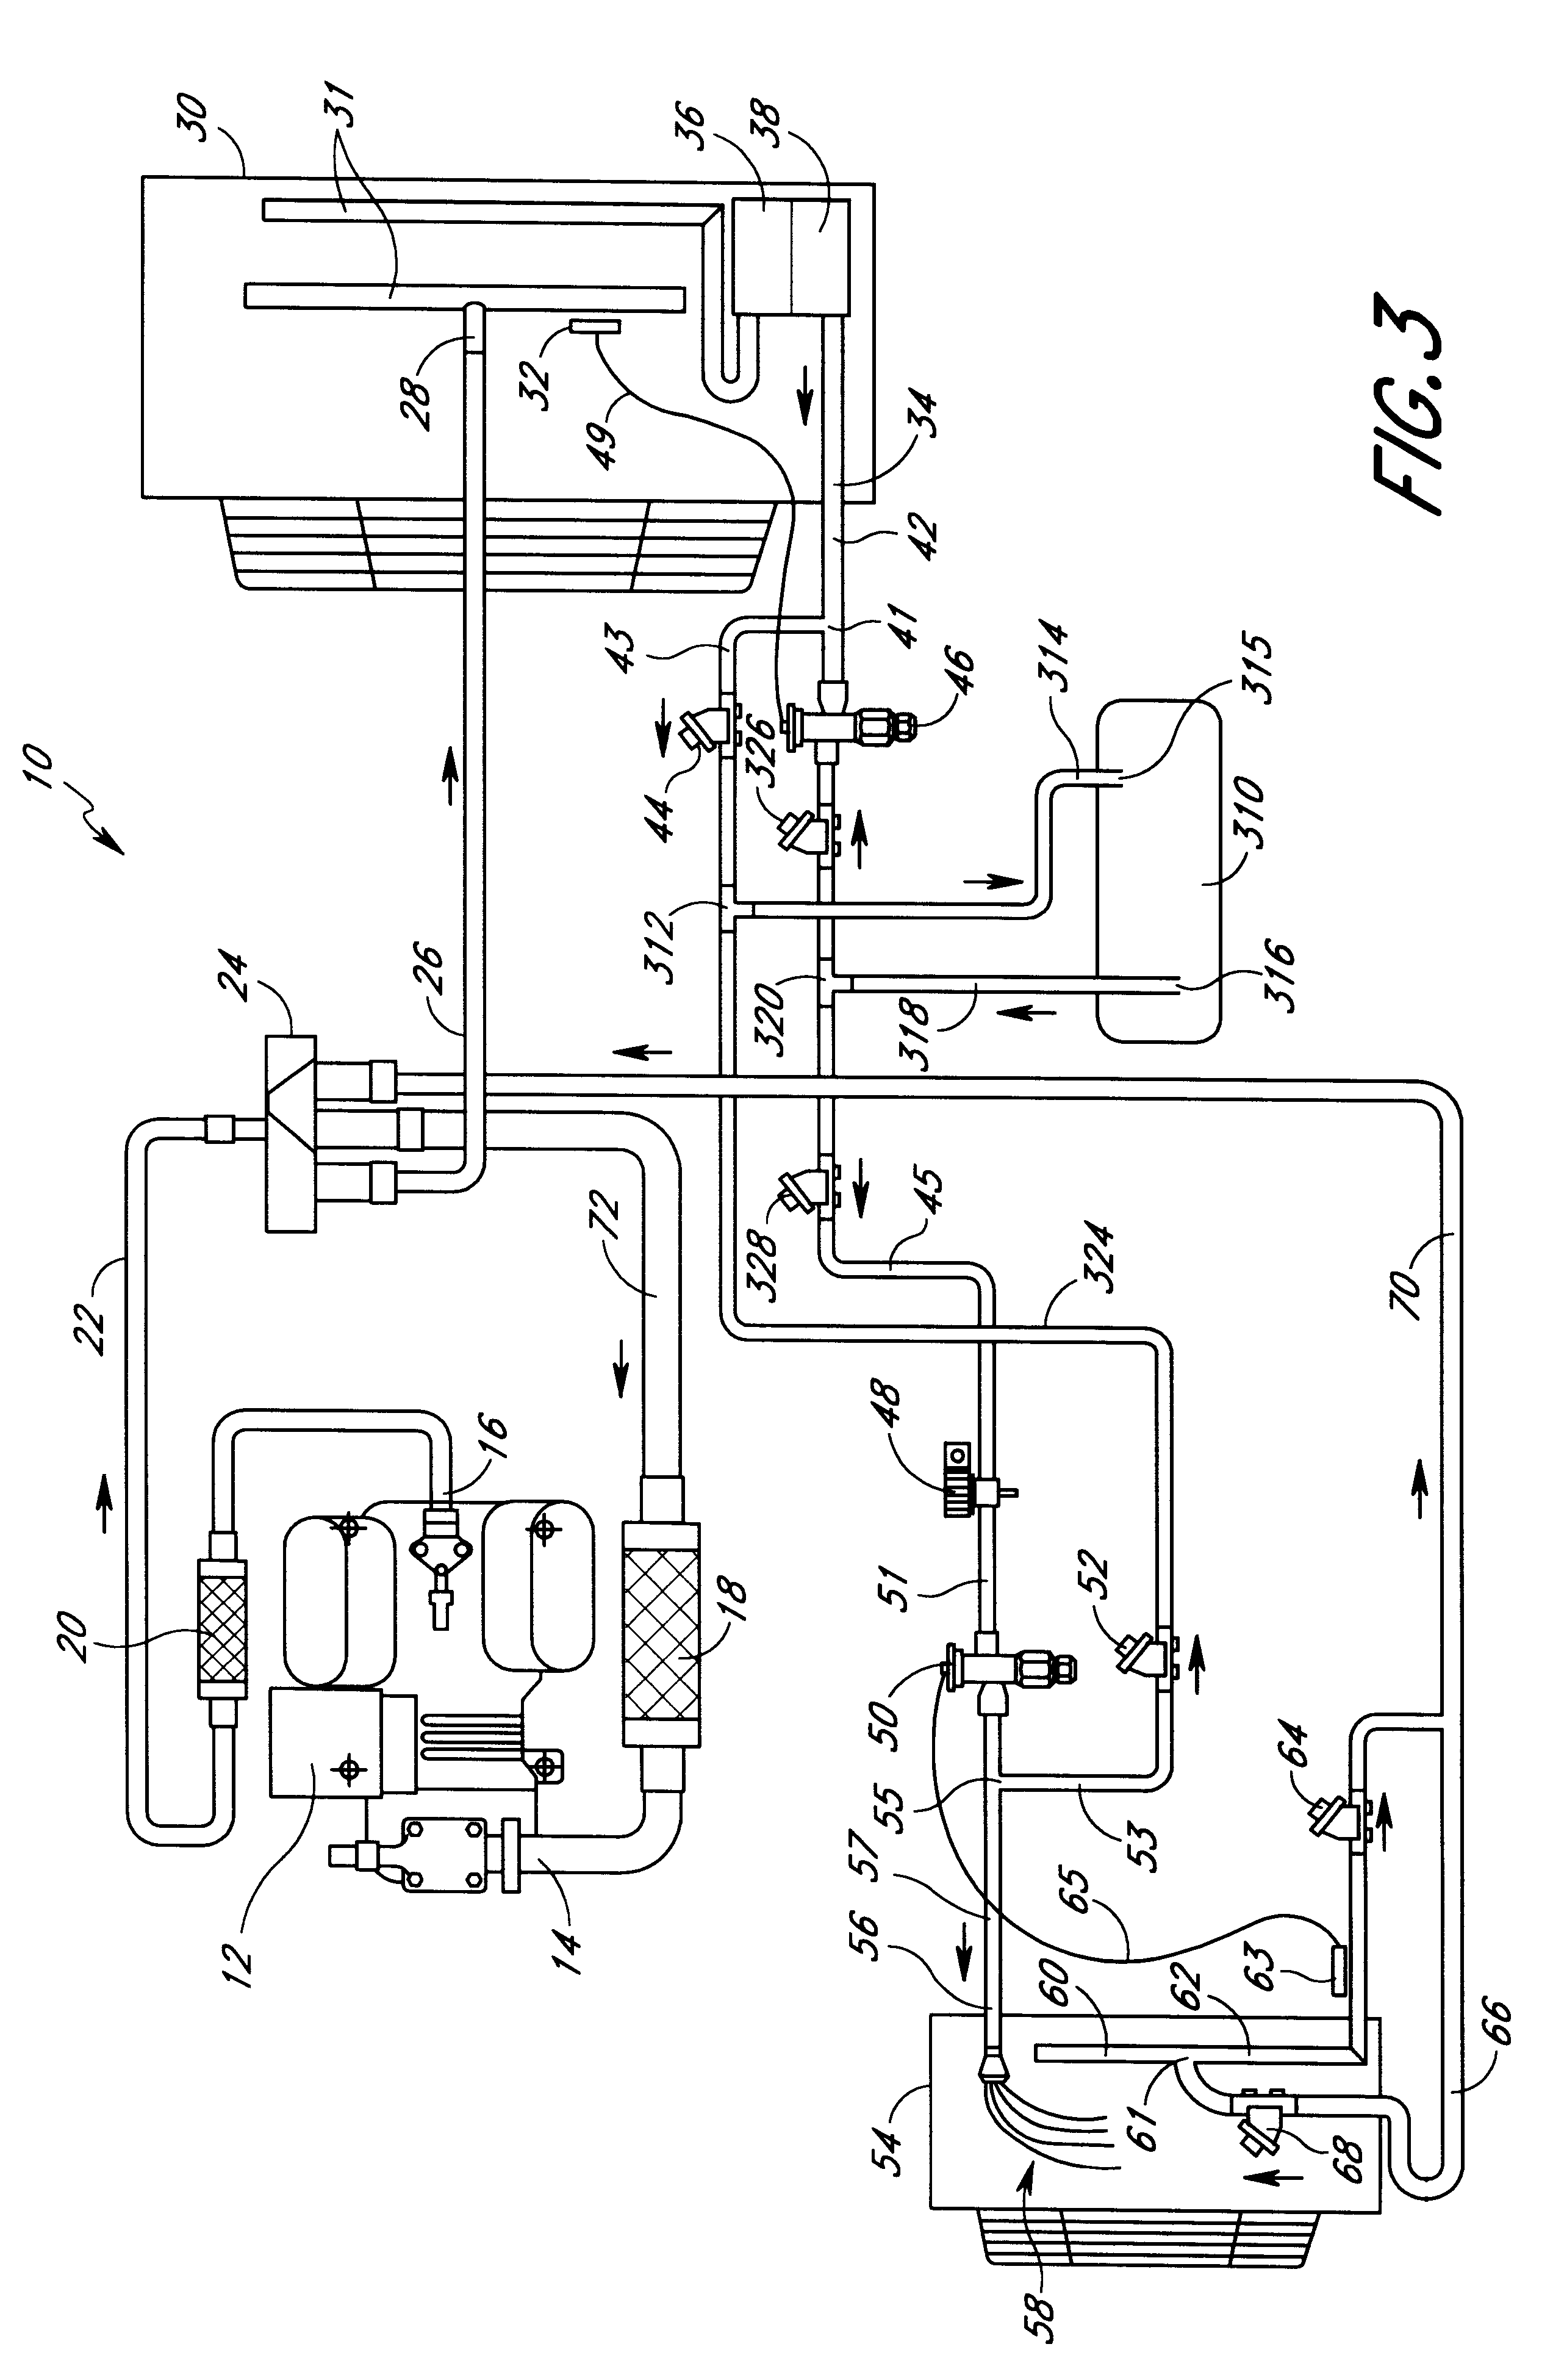 pressor condenser unit wiring diagram pressor free engine image for user manual